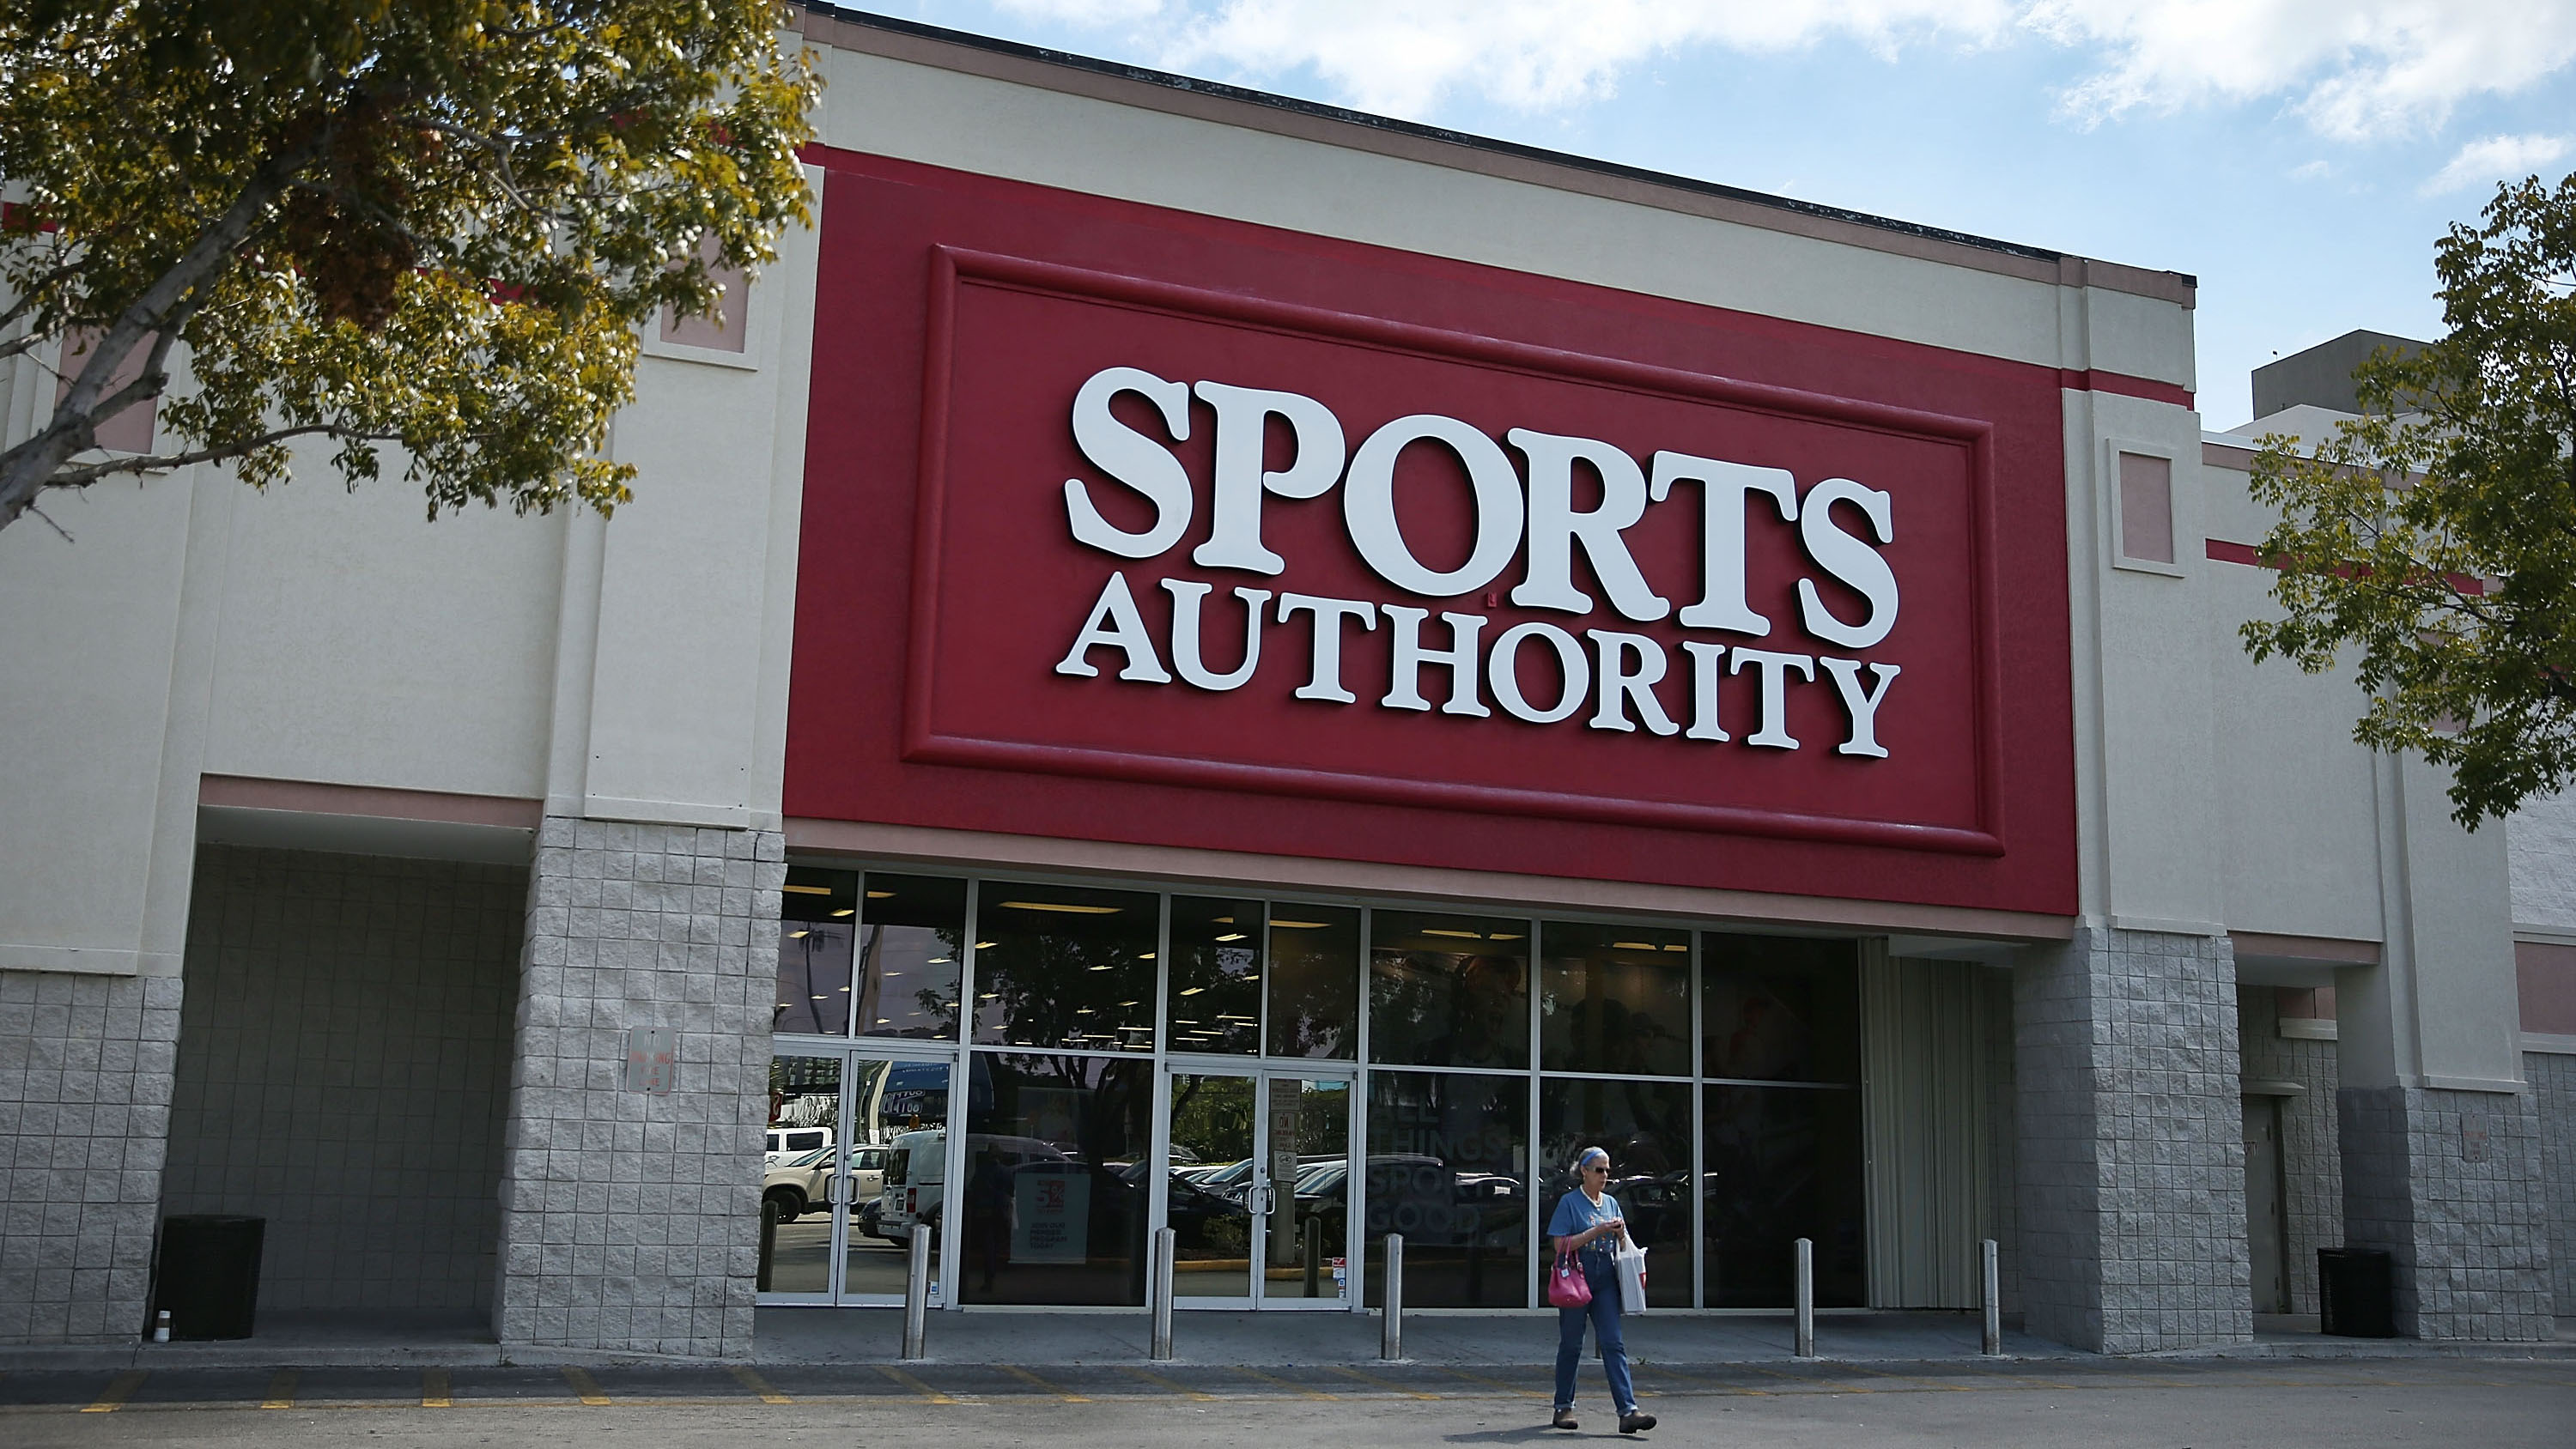 authority sports stores business going sales start ct wfaa executives